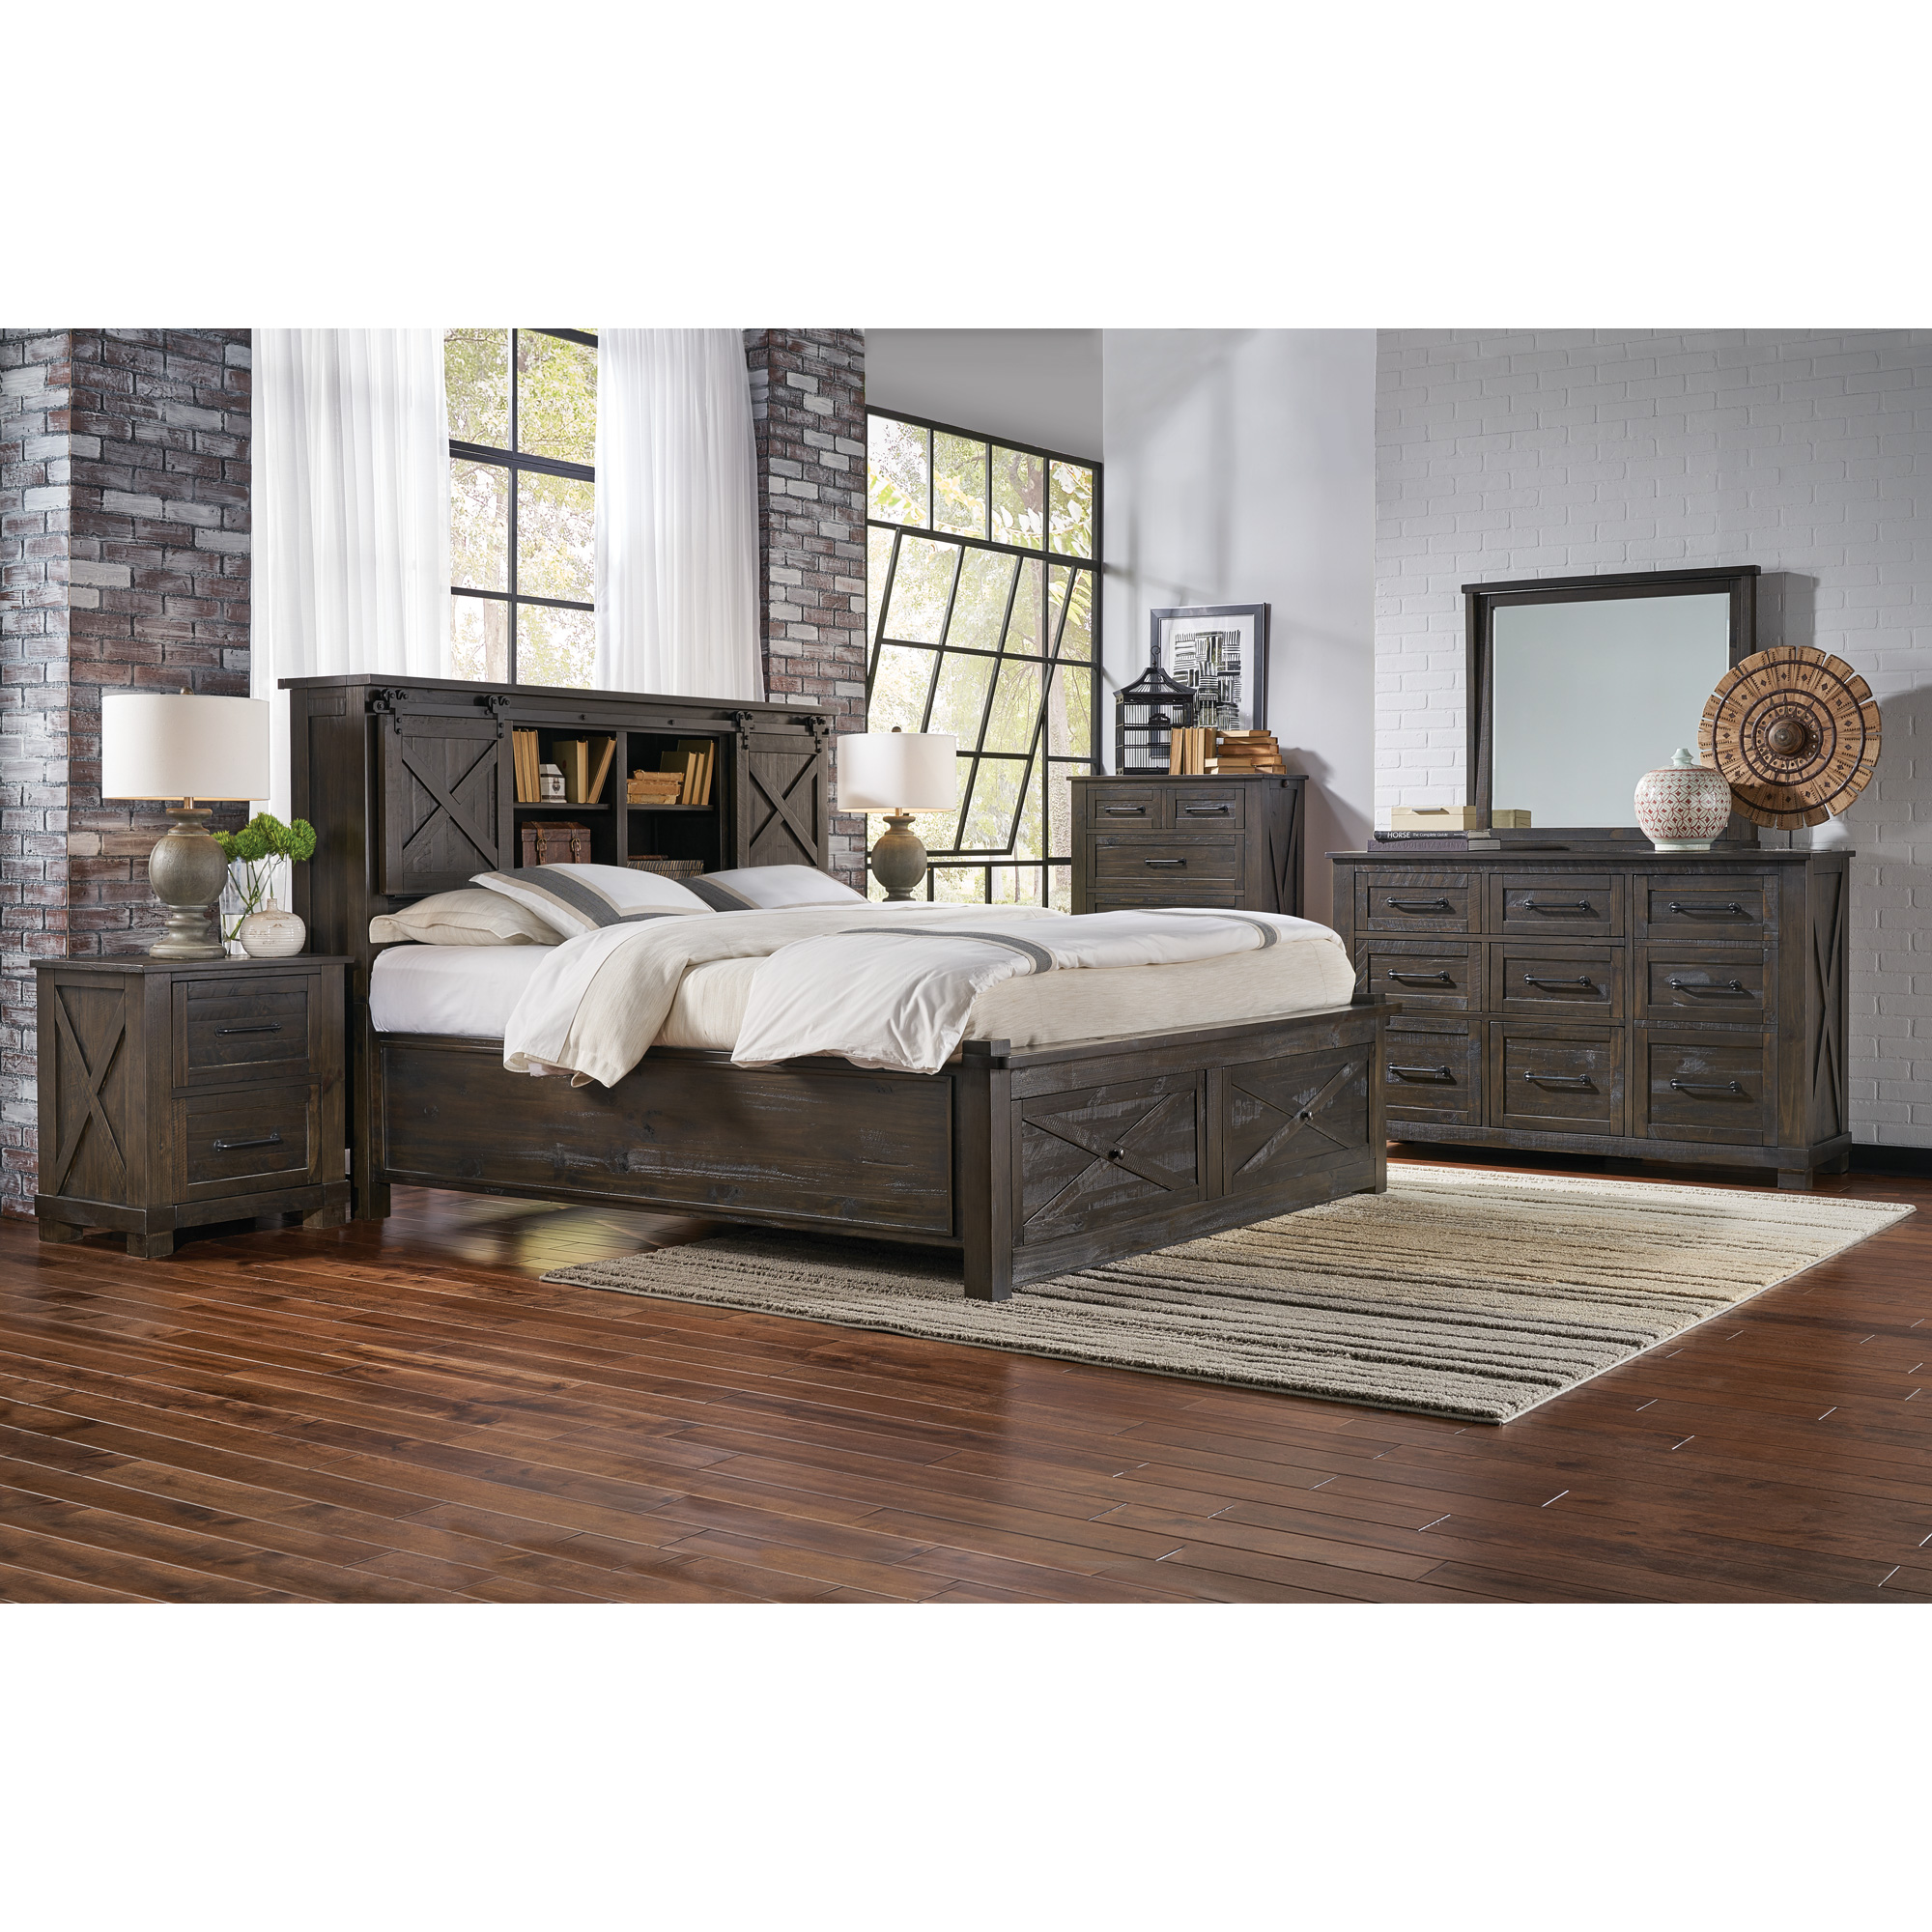 America | Sun Valley Charcoal King Storage 4 Piece Room Group Bedroom Set